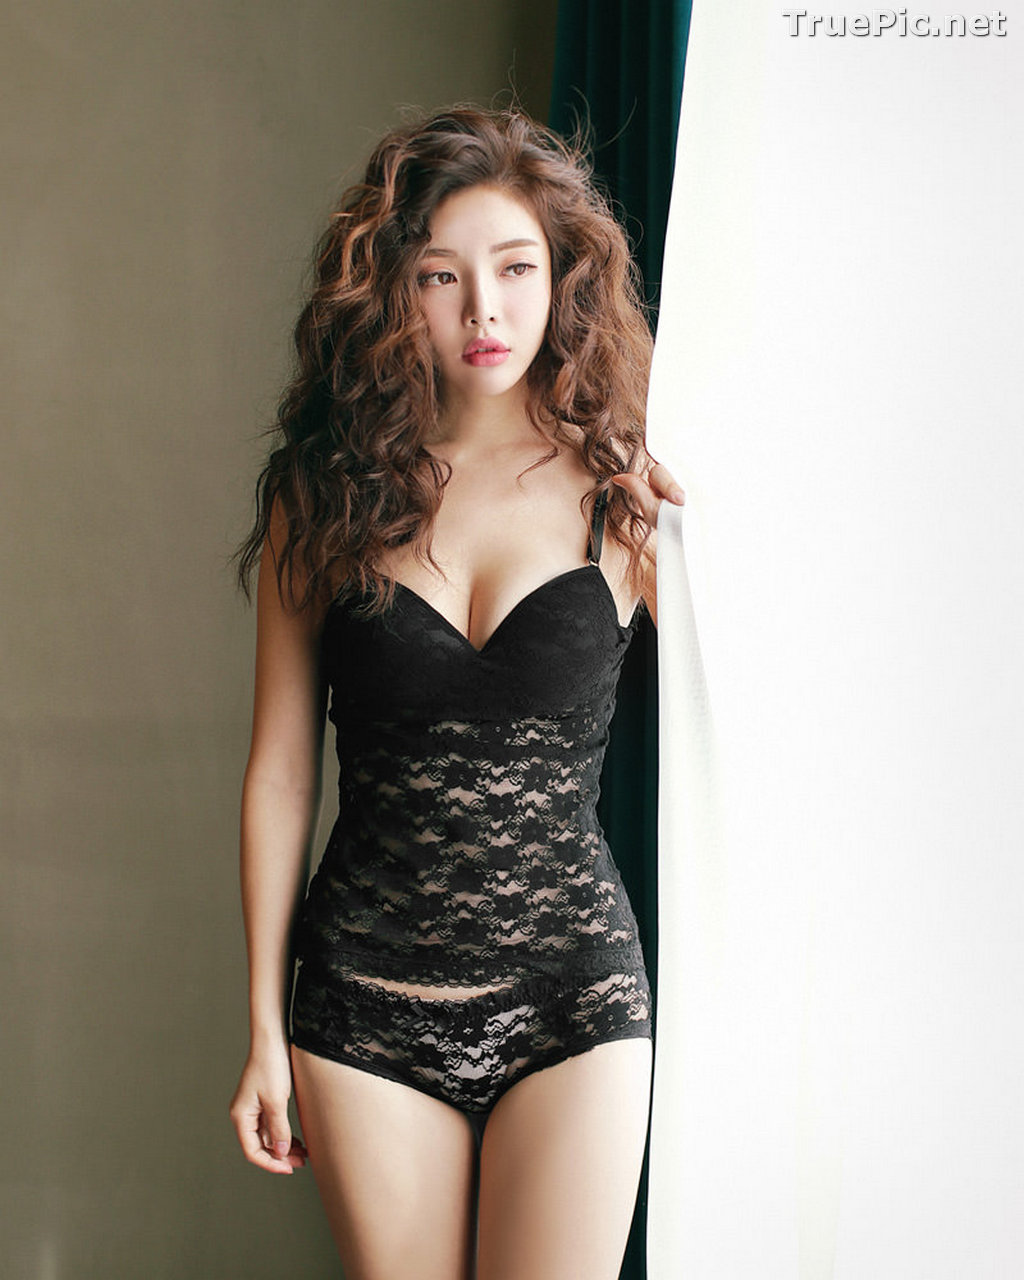 Image Korean Fashion Model – Jin Hee – Sexy Lingerie Collection #1 - TruePic.net - Picture-1